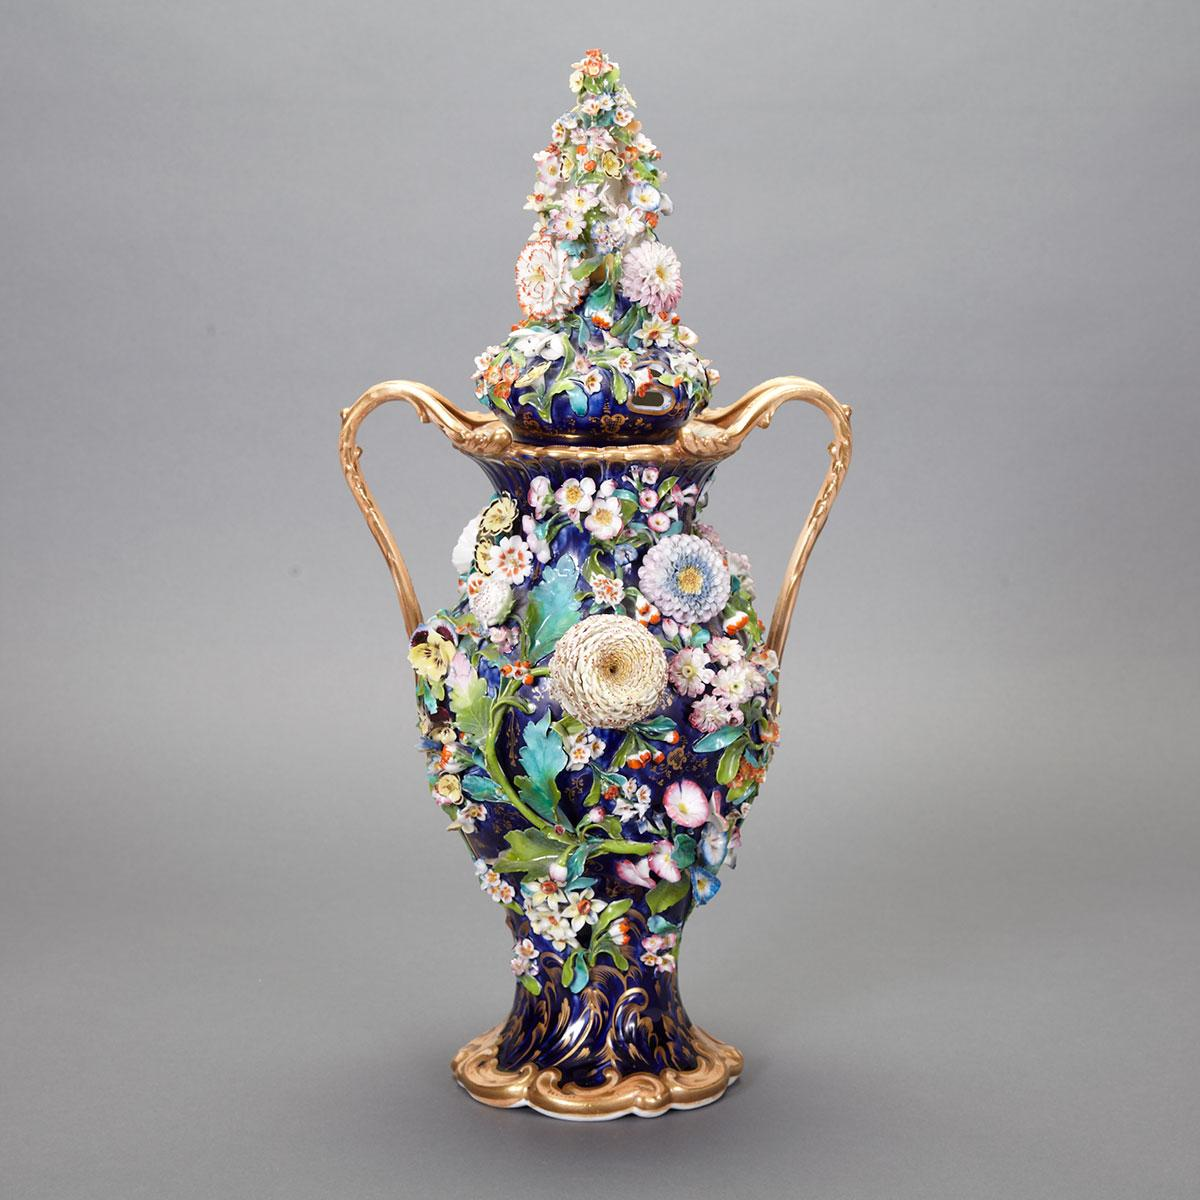 Coalbrookdale Style Two-Handled Vase and Cover, mid-19th century